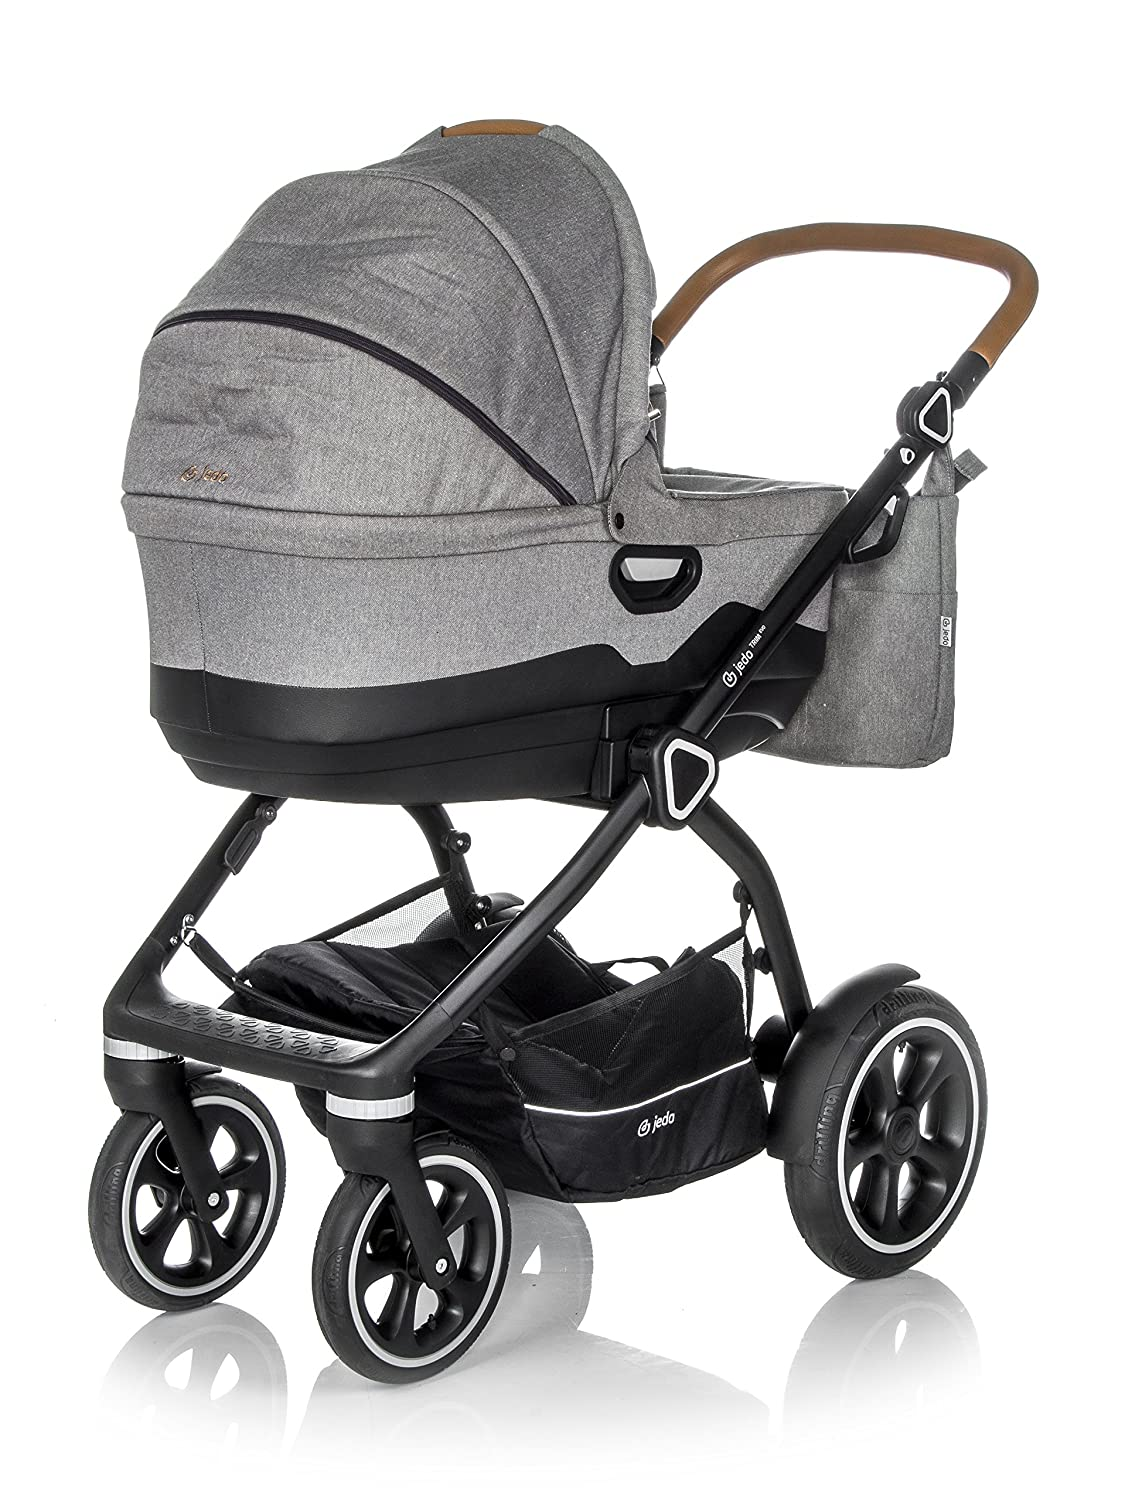 Baby stroller Jedo: photo and review of models, reviews 35